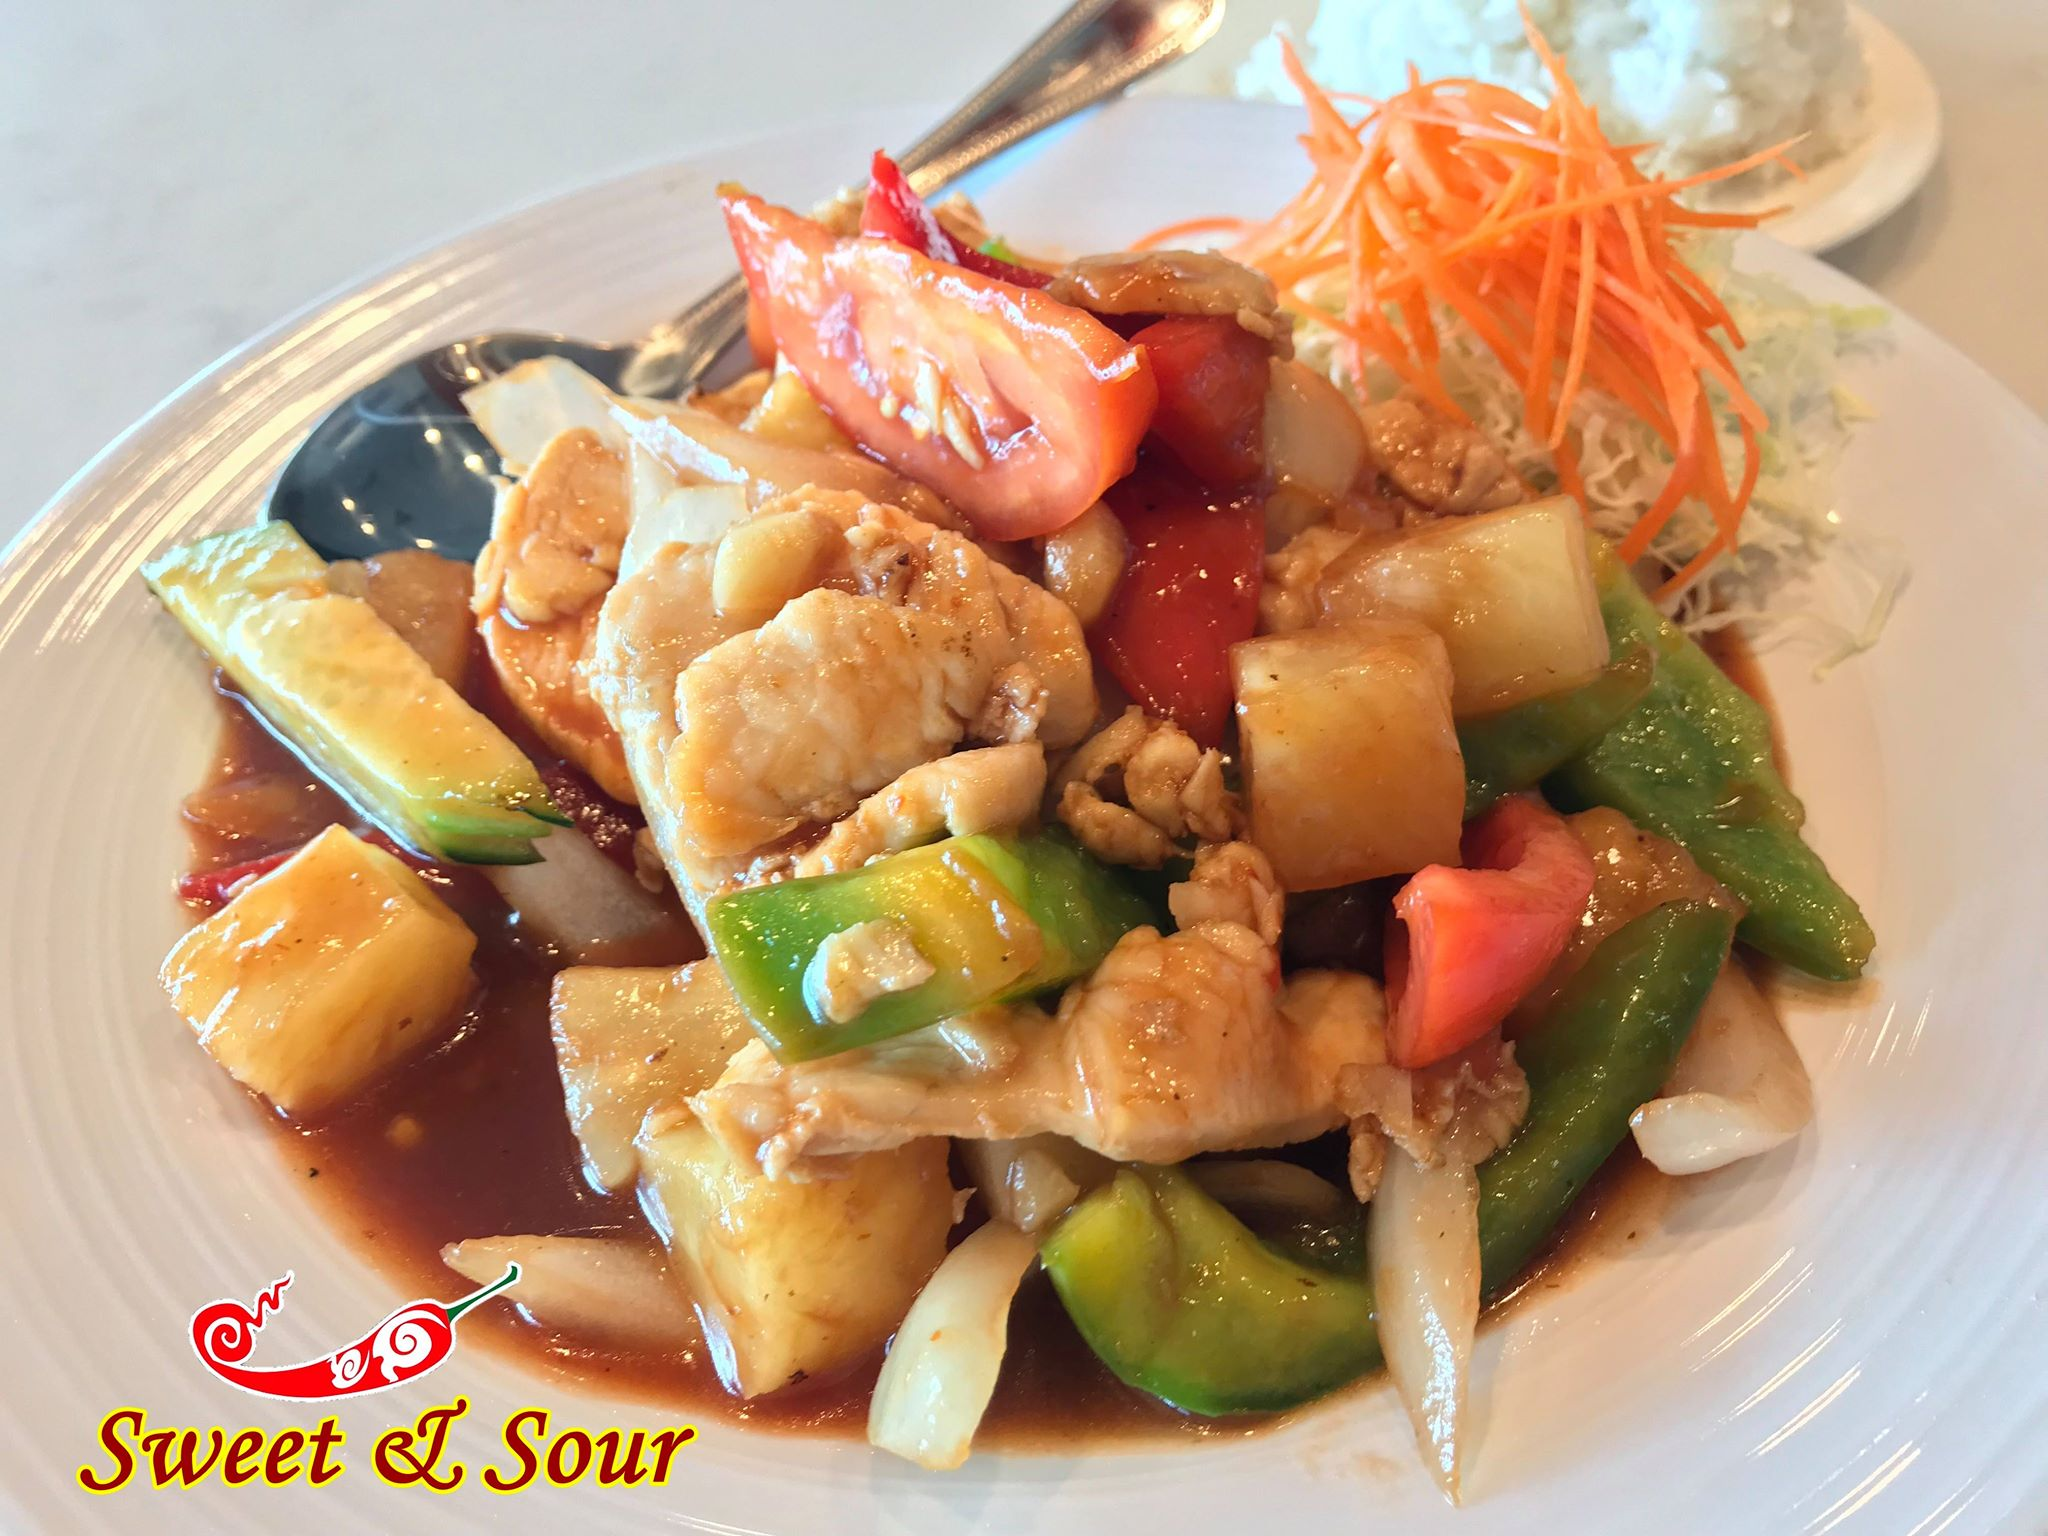 Thai Sweet and Sour Image